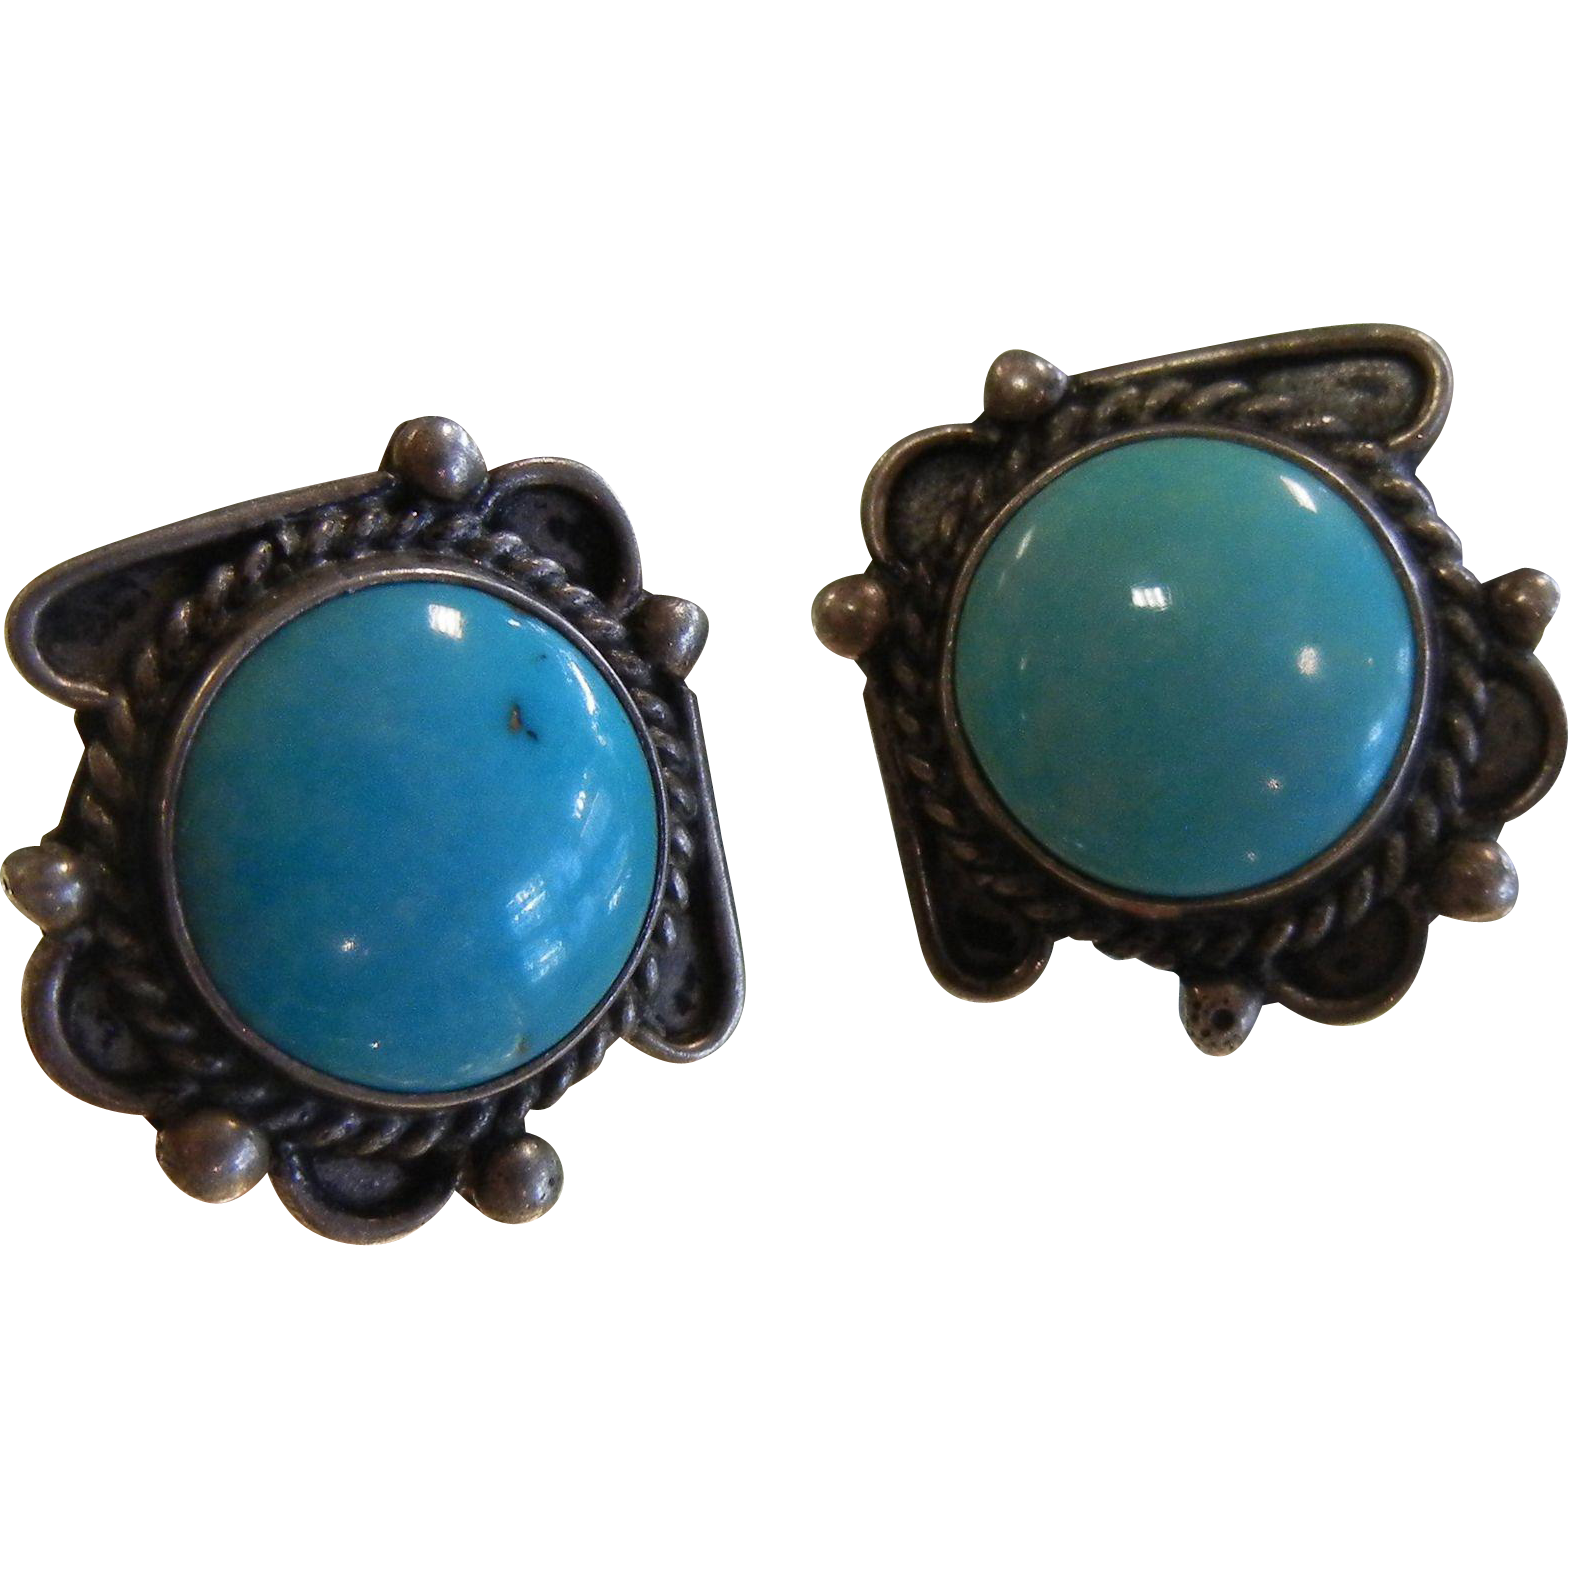 Vintage Sterling Silver Screw Back Earrings w/ Natural Turquoise Cabochons